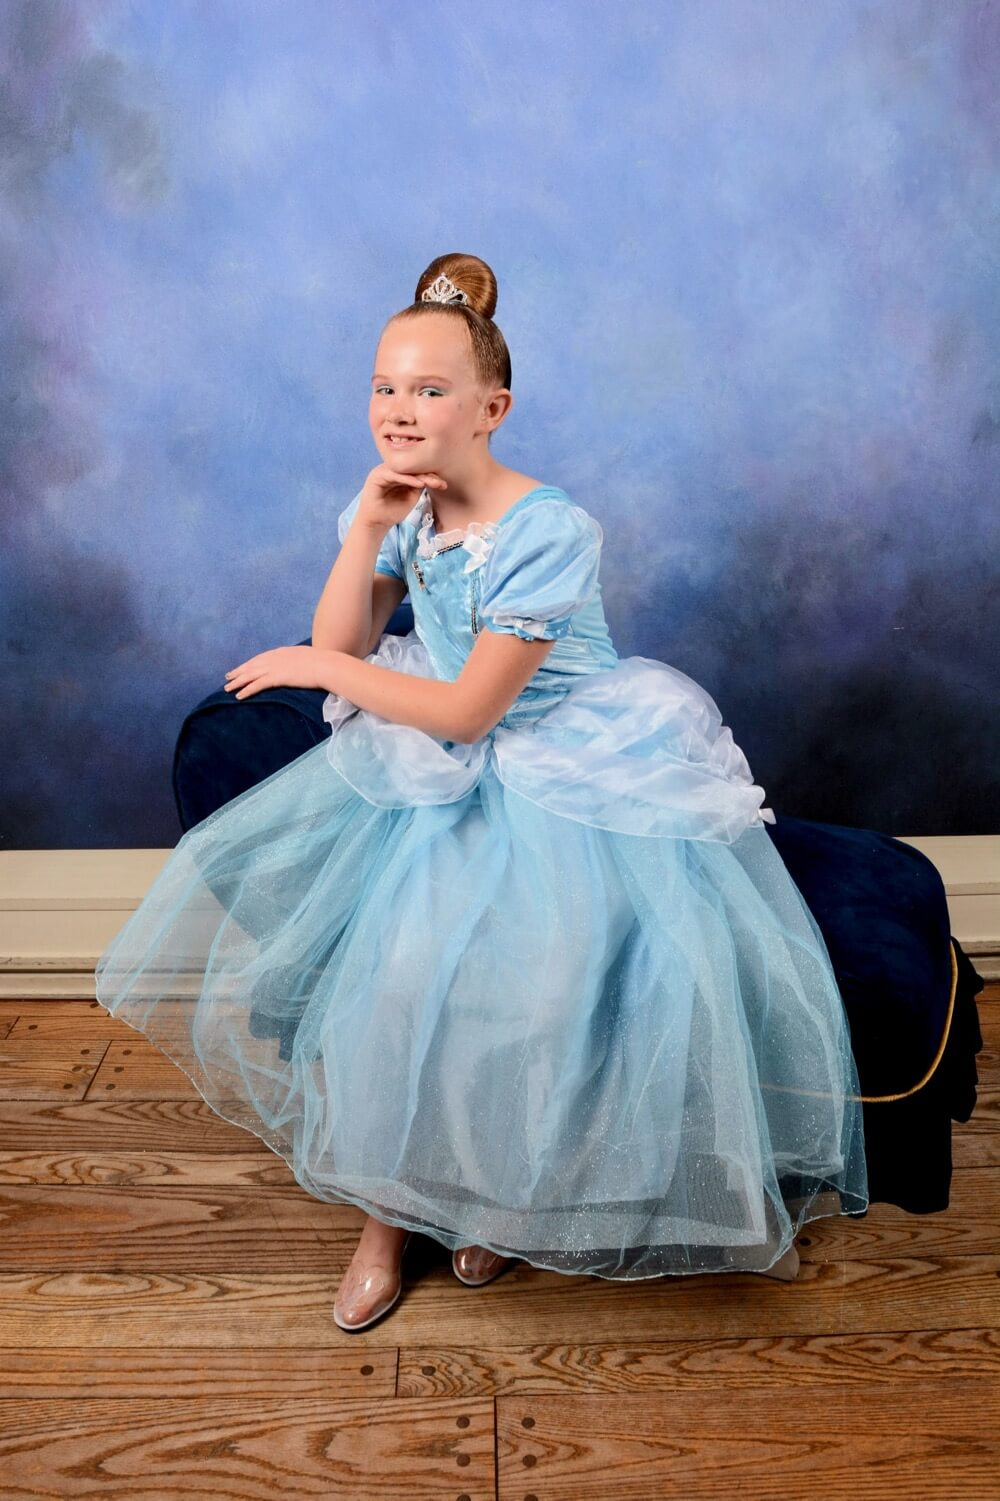 Bibbidi Bobbidi Boutique - Bippity Boppity Boutique - Photo Studio